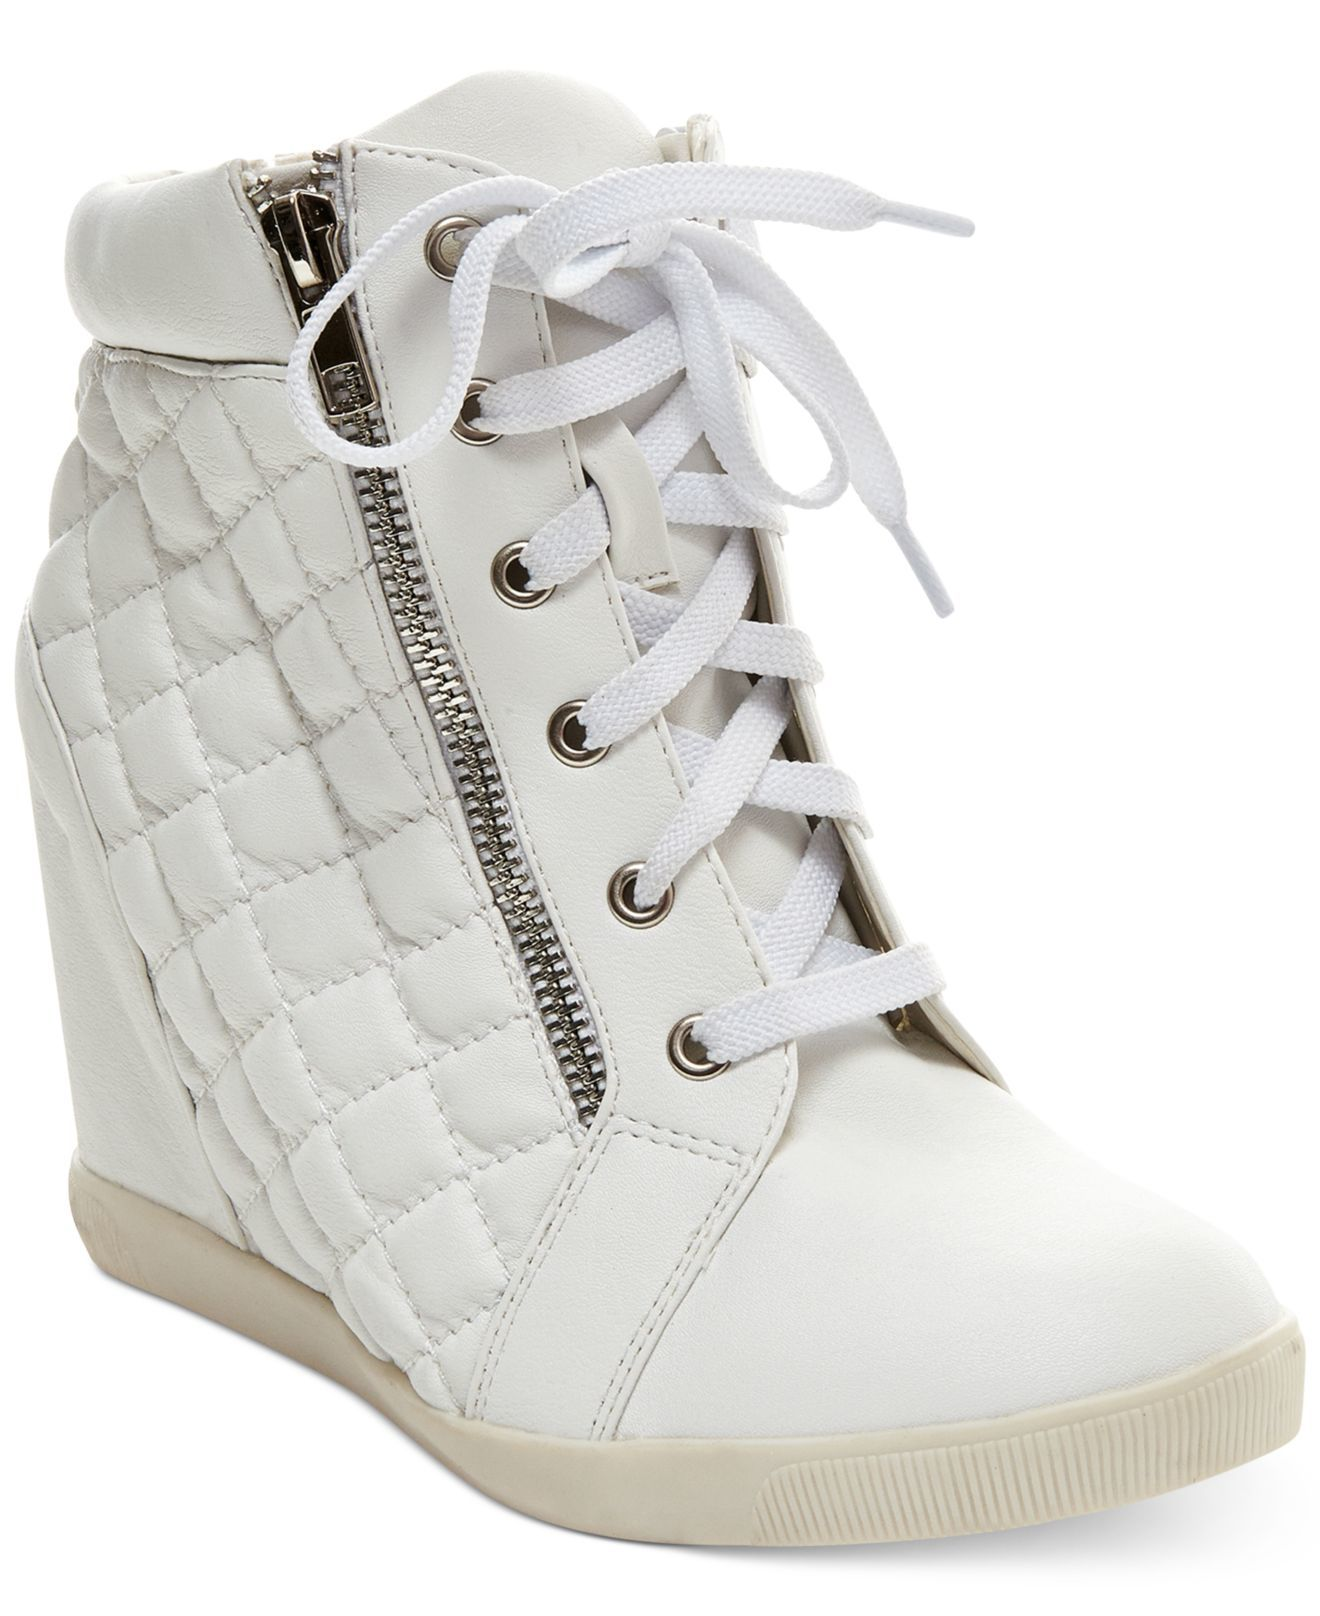 10e0338725c Madden girl Baaxter Quilted High Top Wedge Sneakers in White